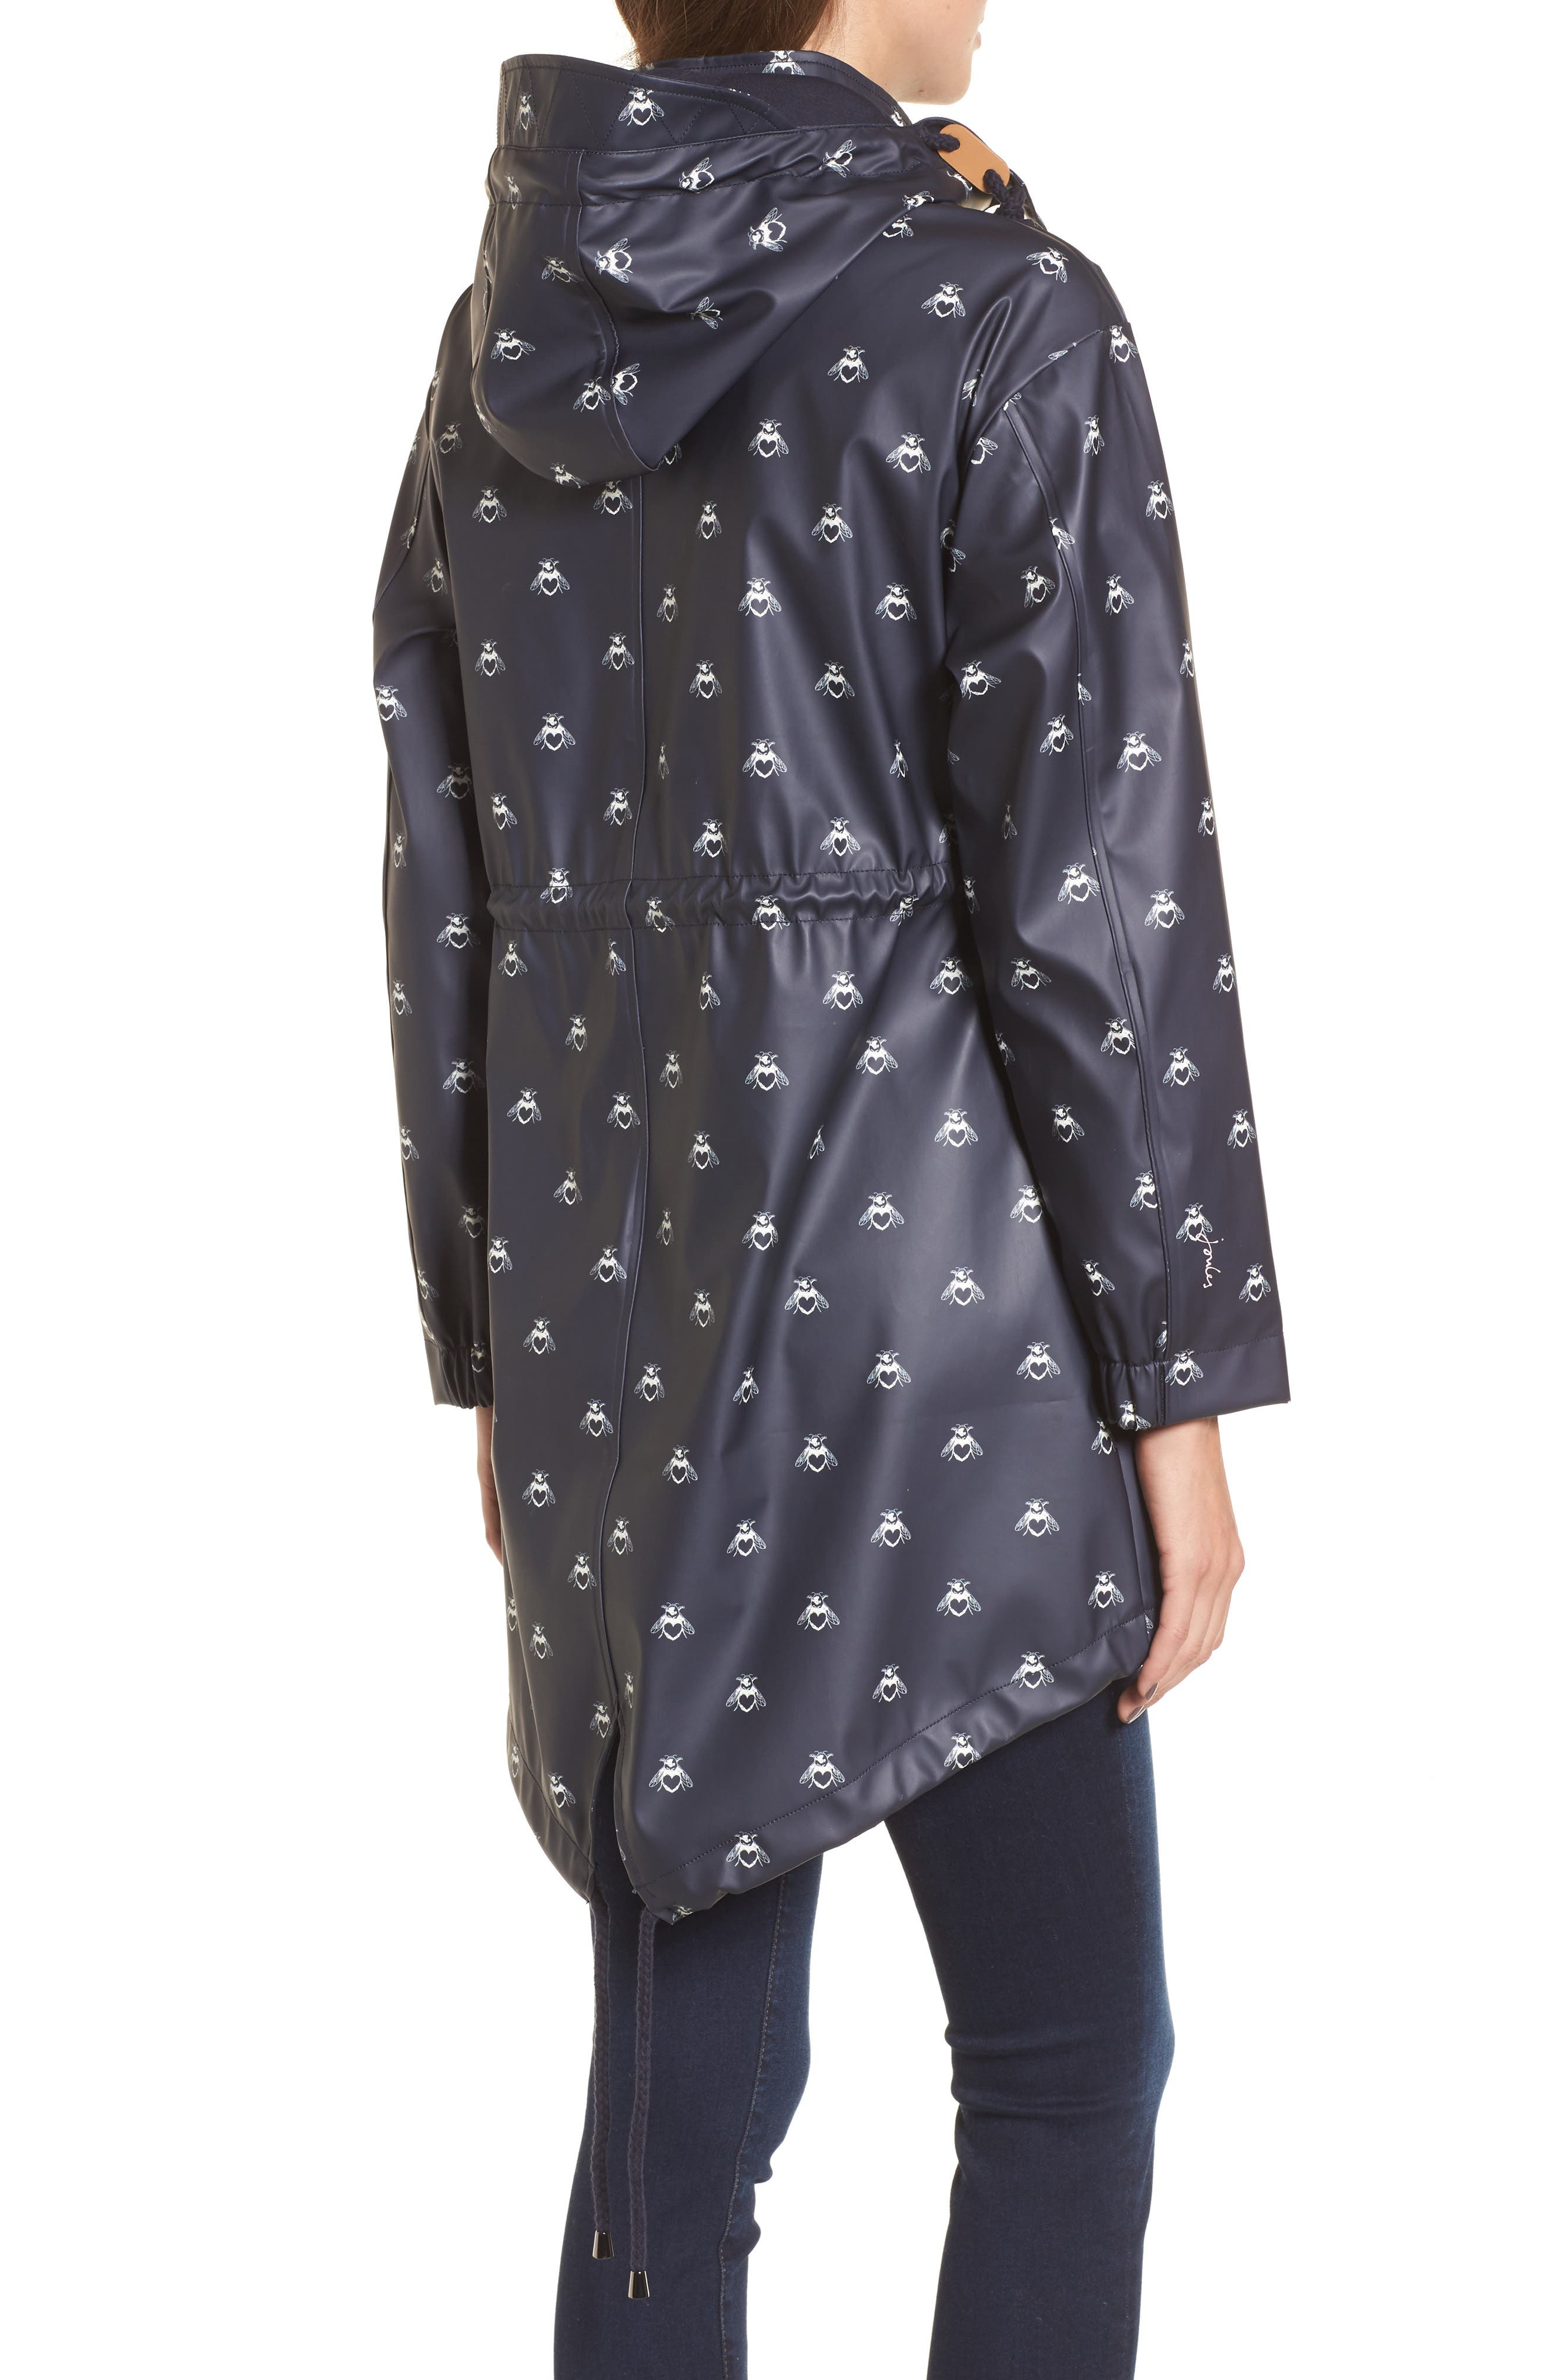 Right As Rain Packable Hooded Raincoat,                             Alternate thumbnail 2, color,                             Navy Love Bees